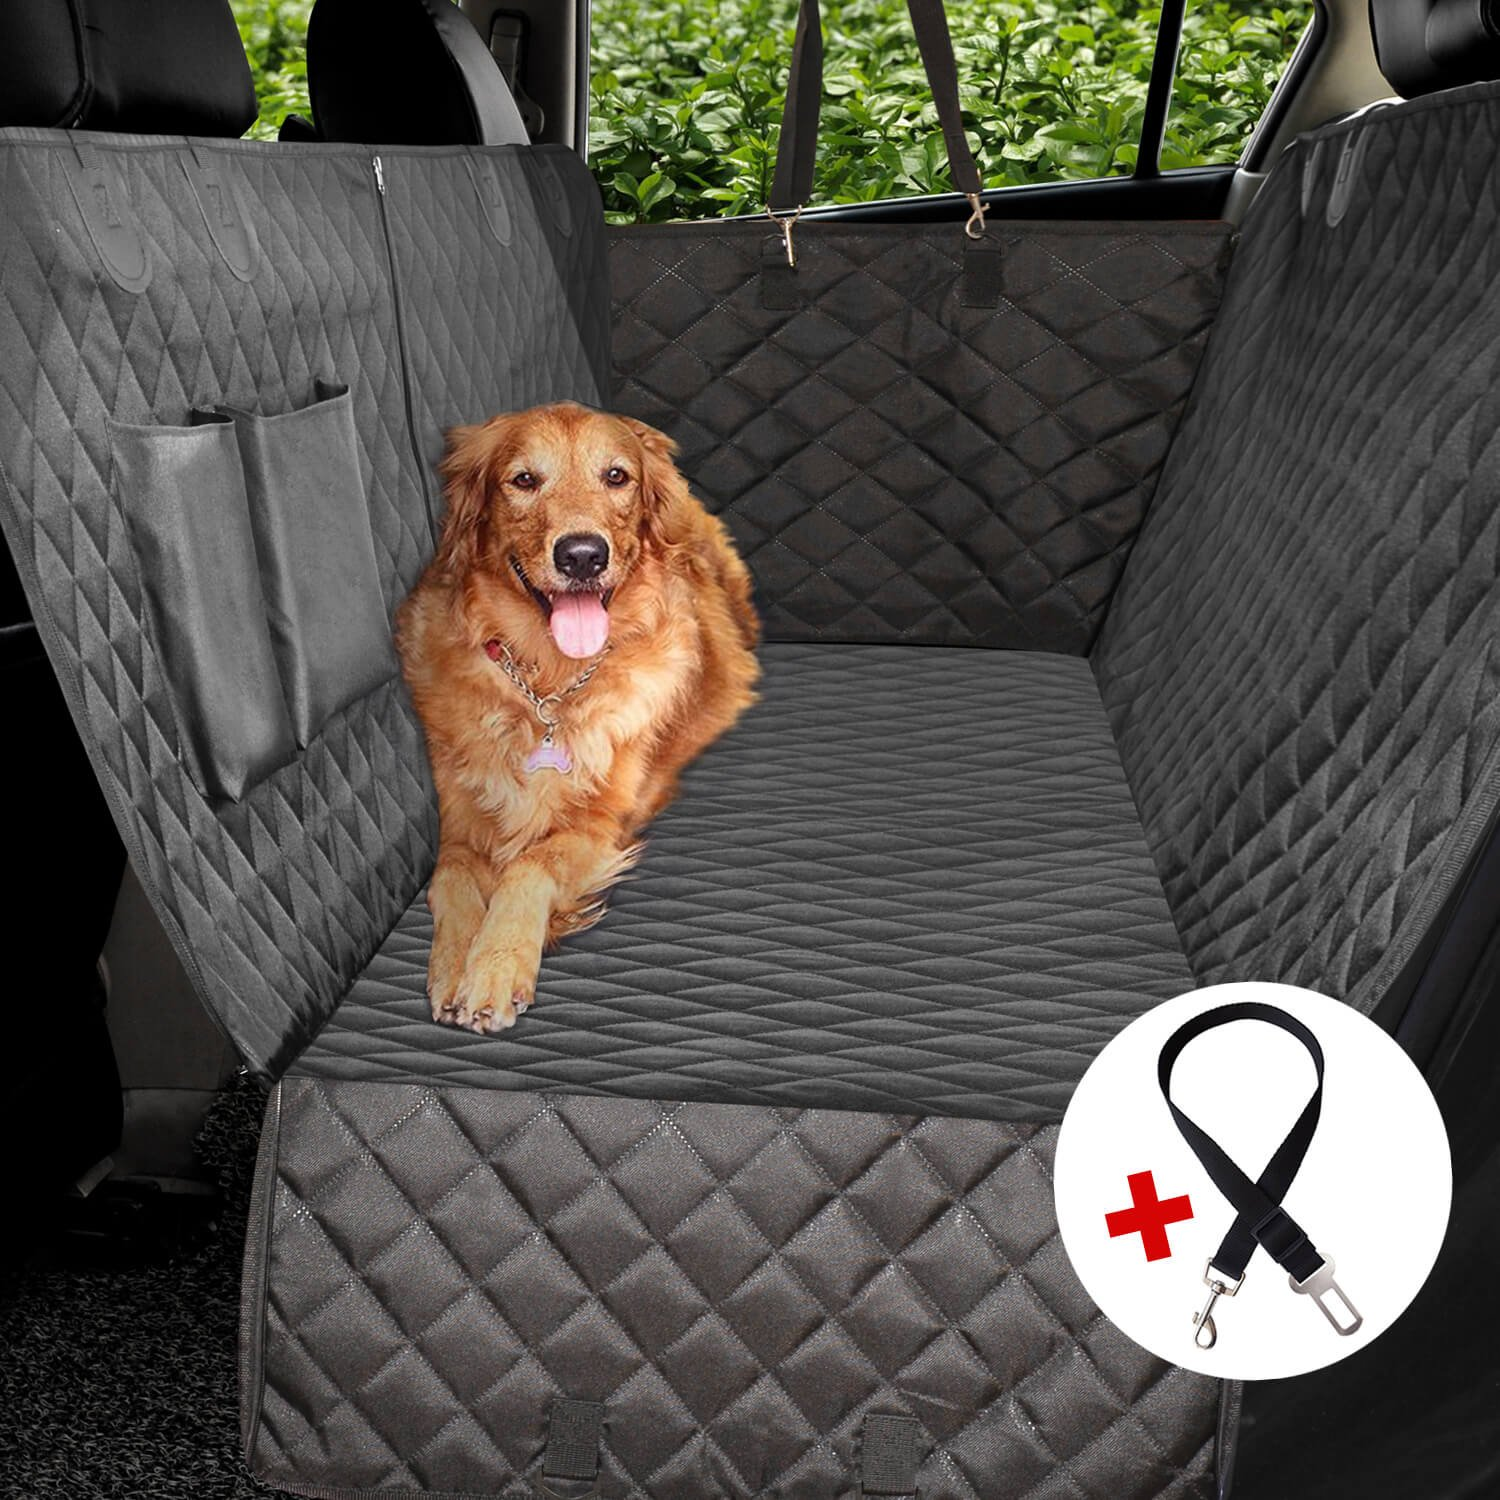 Vailge Extra Large Dog Car Seat Covers, 100% Waterproof Dog Seat Cover for Back Seat with zipper side flap, Heavy Duty seat cover for dogs, dog car hammock Pet Seat Cover for cars trucks suvs, X-Large